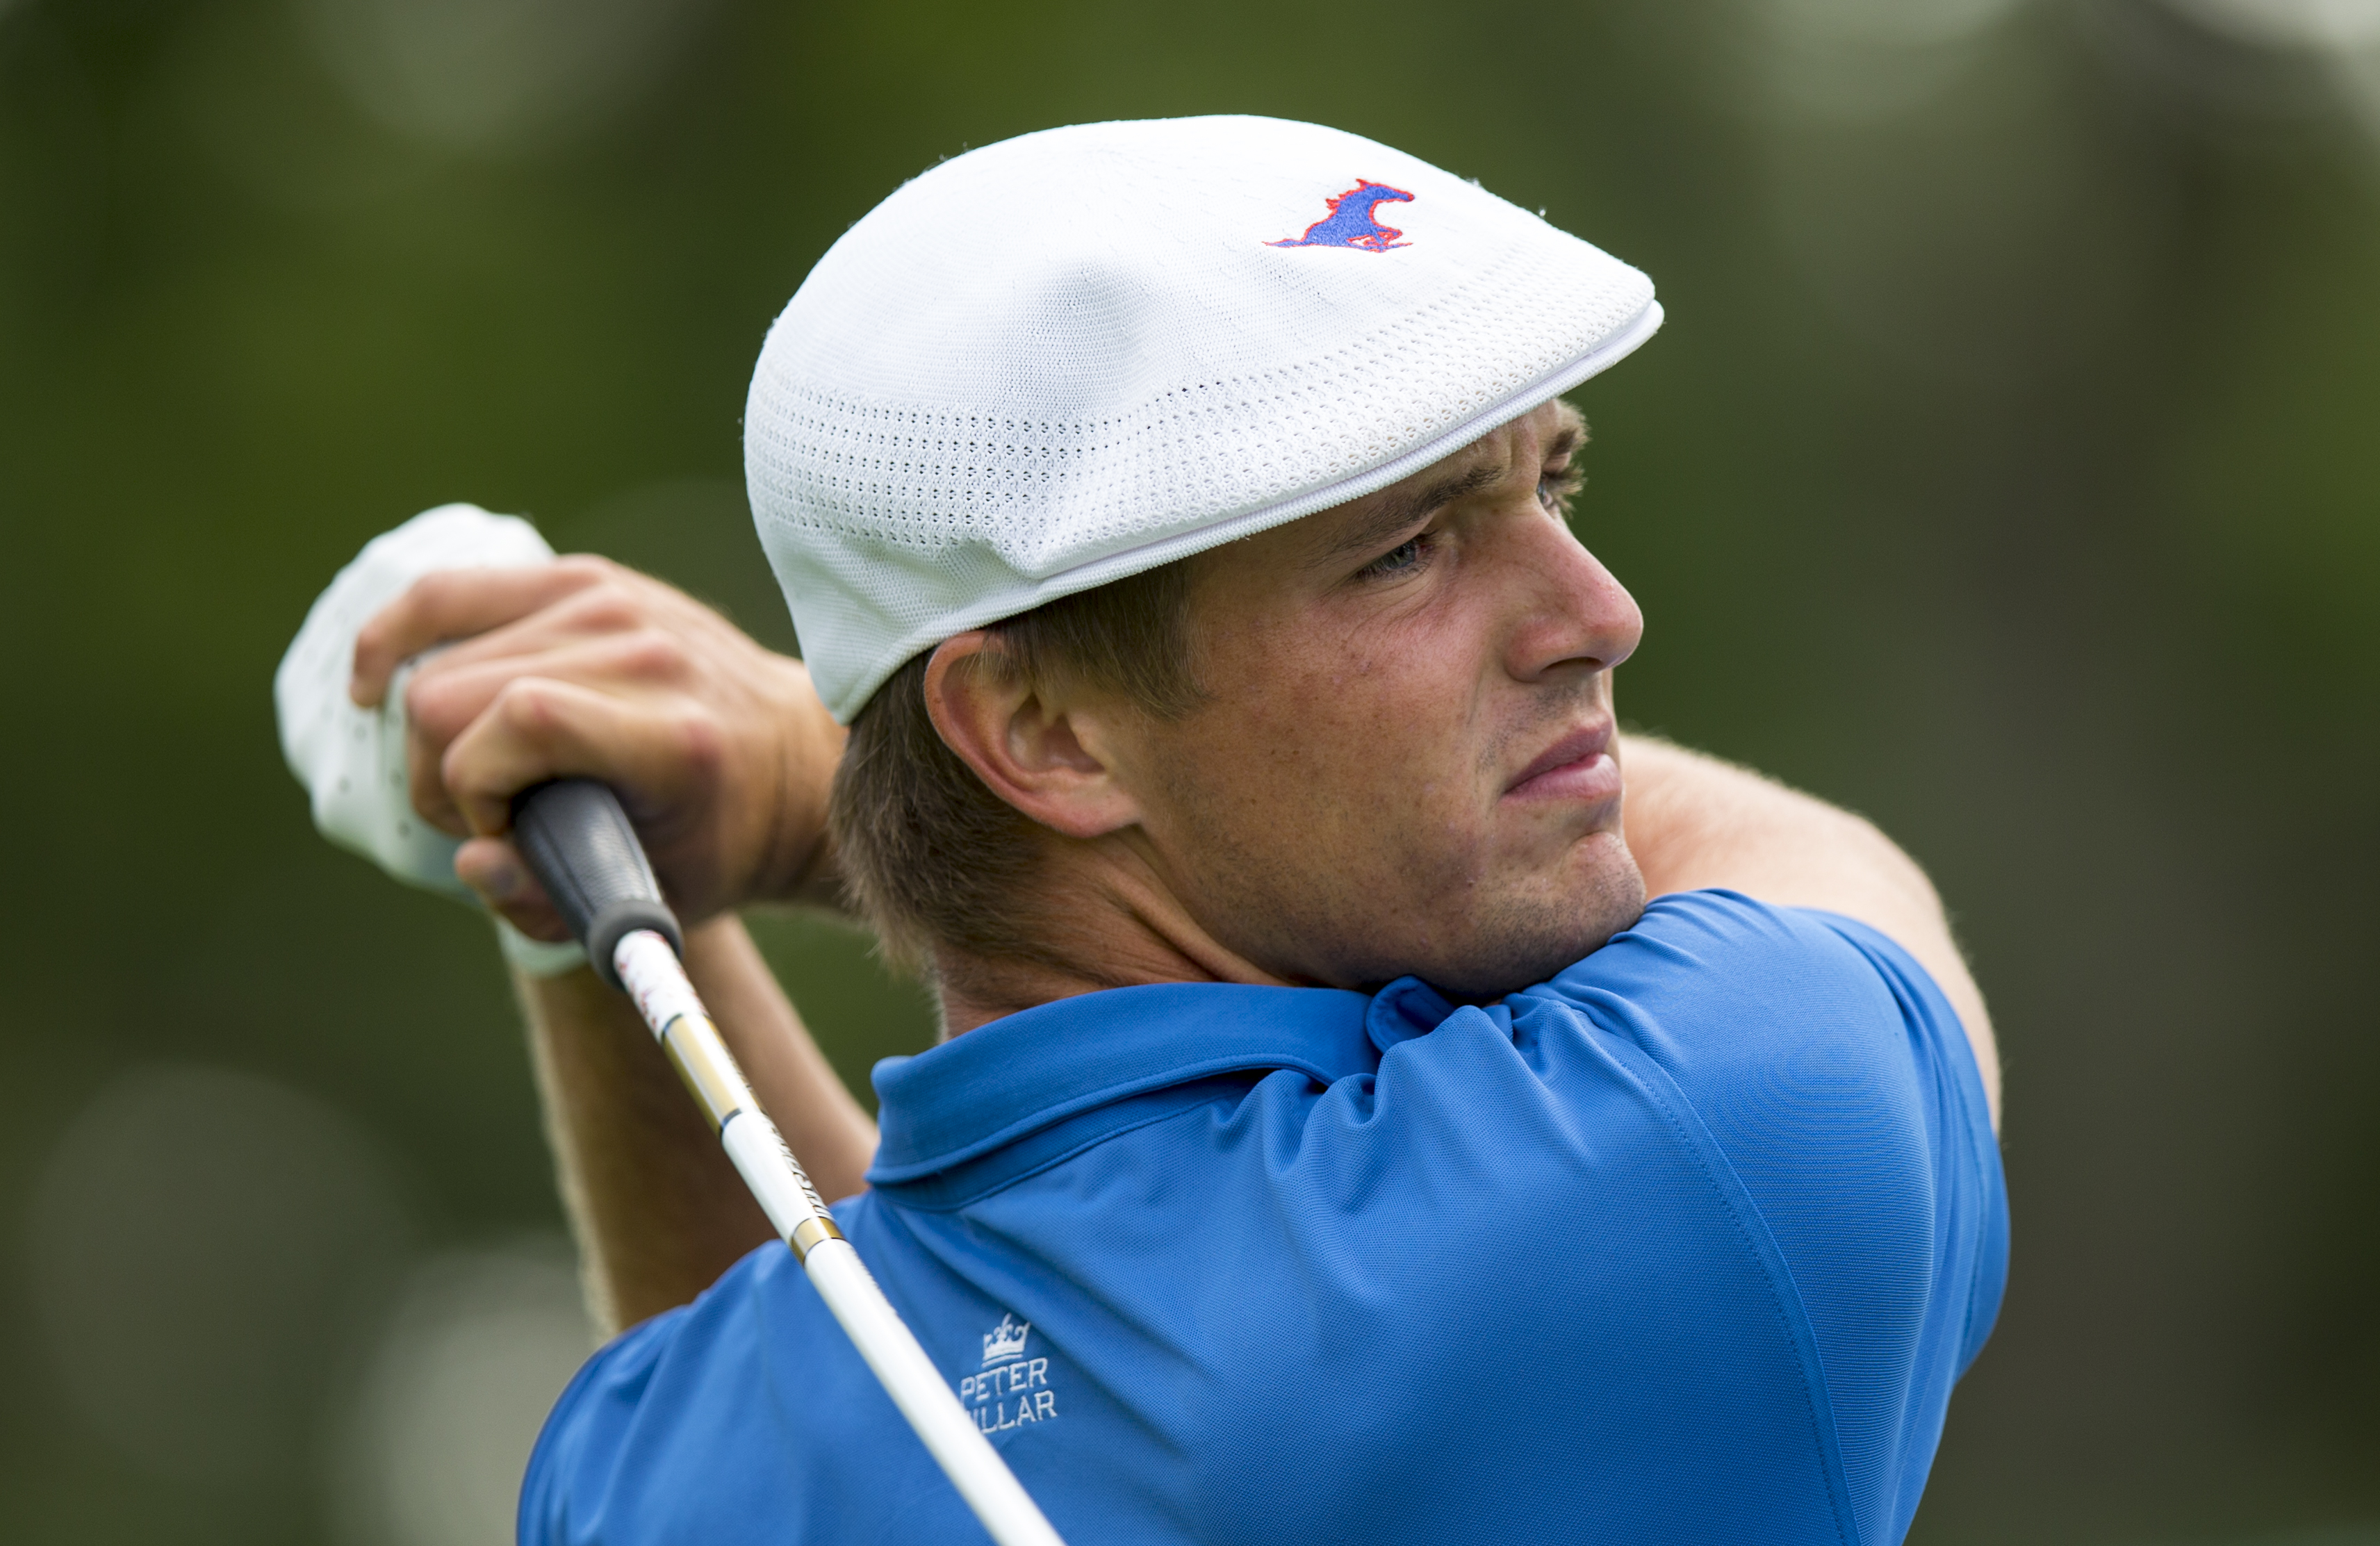 In a photo provided by the USGA< Bryson DeChambeau plays his tee shot on the 11th hole during a match-play round at the U.S. Amateur golf tournament at Olympia Fields Country Club in Olympia Fields, Ill., on Thursday, Aug. 20, 2015. (Chris Keane/USGA via